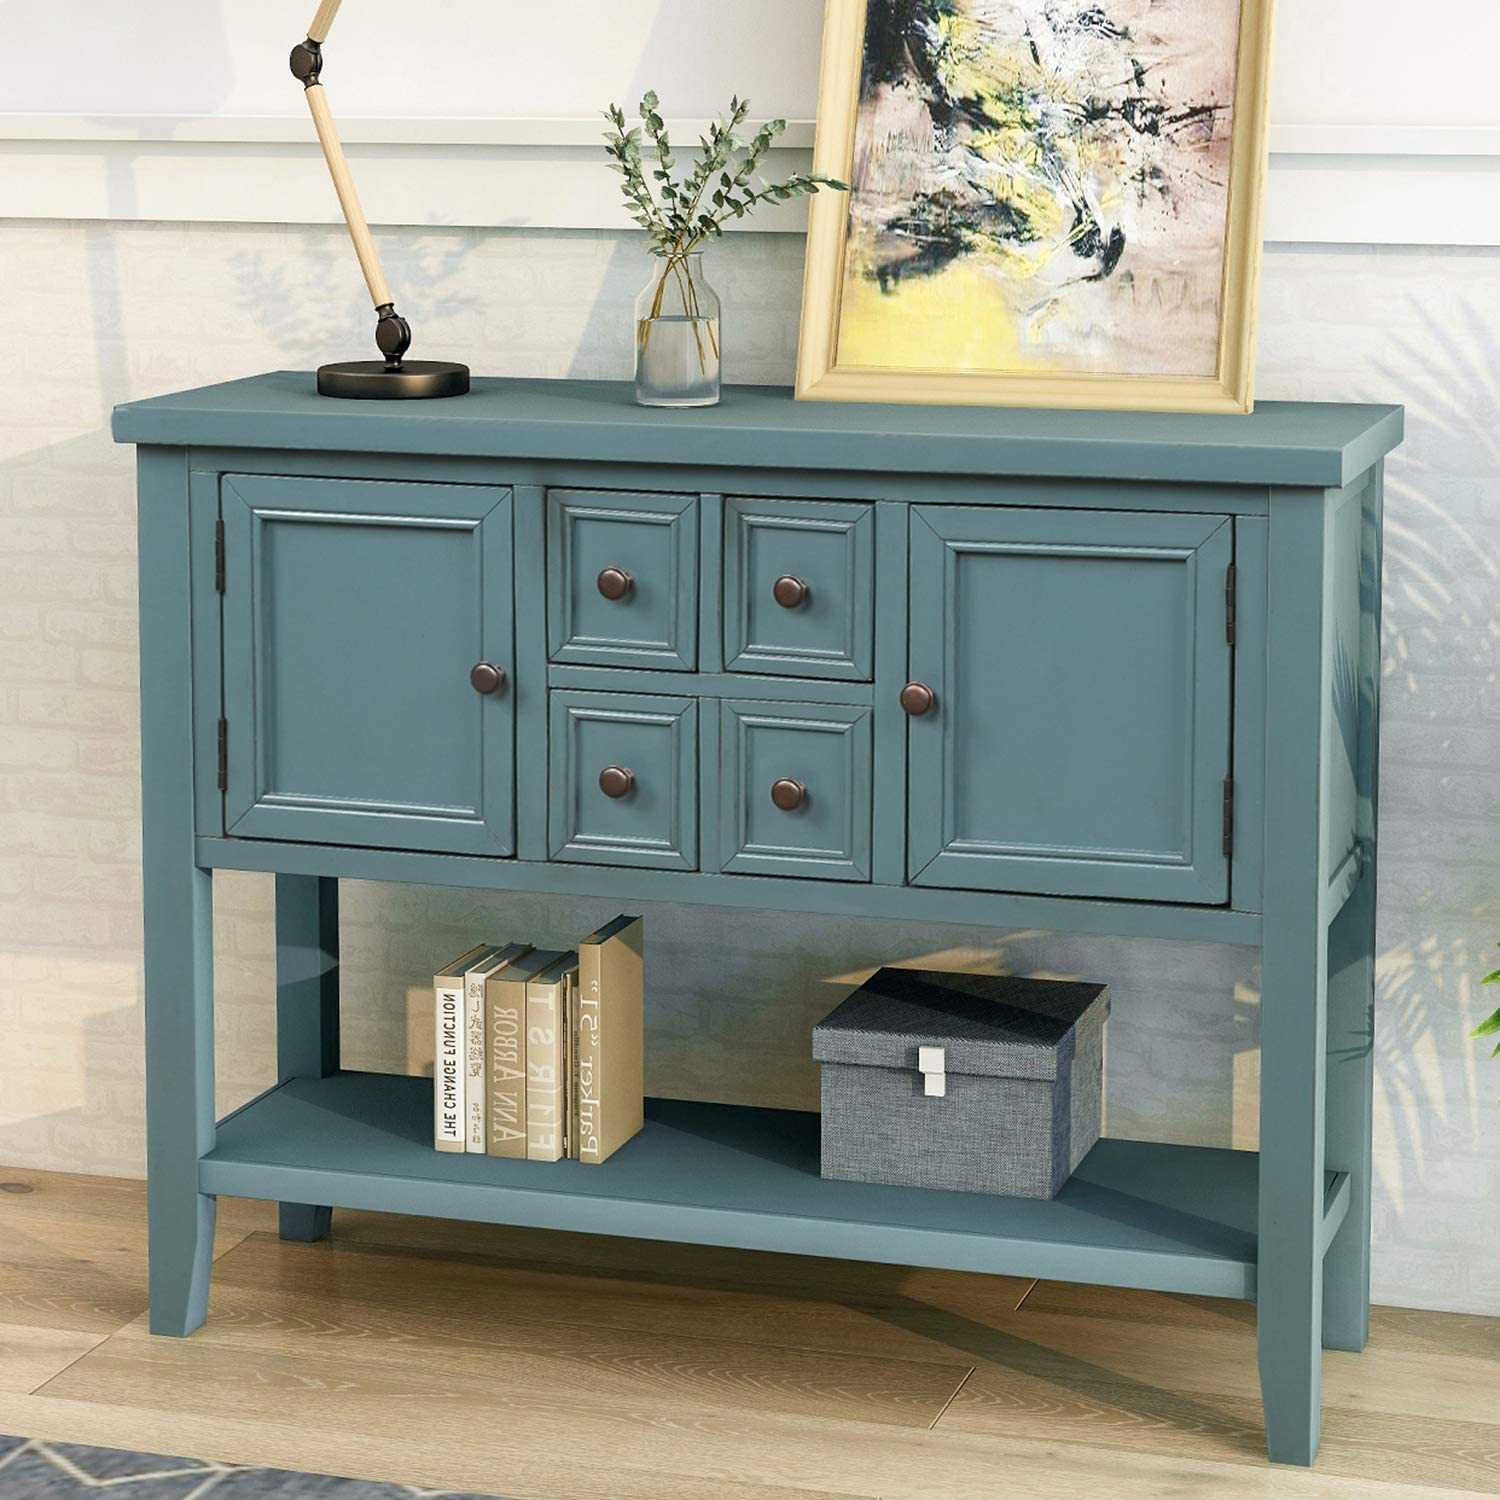 Retro Blue P PURLOVE Console Table Buffet Sideboard with Storage Drawers Cabinets and Bottom Shelf